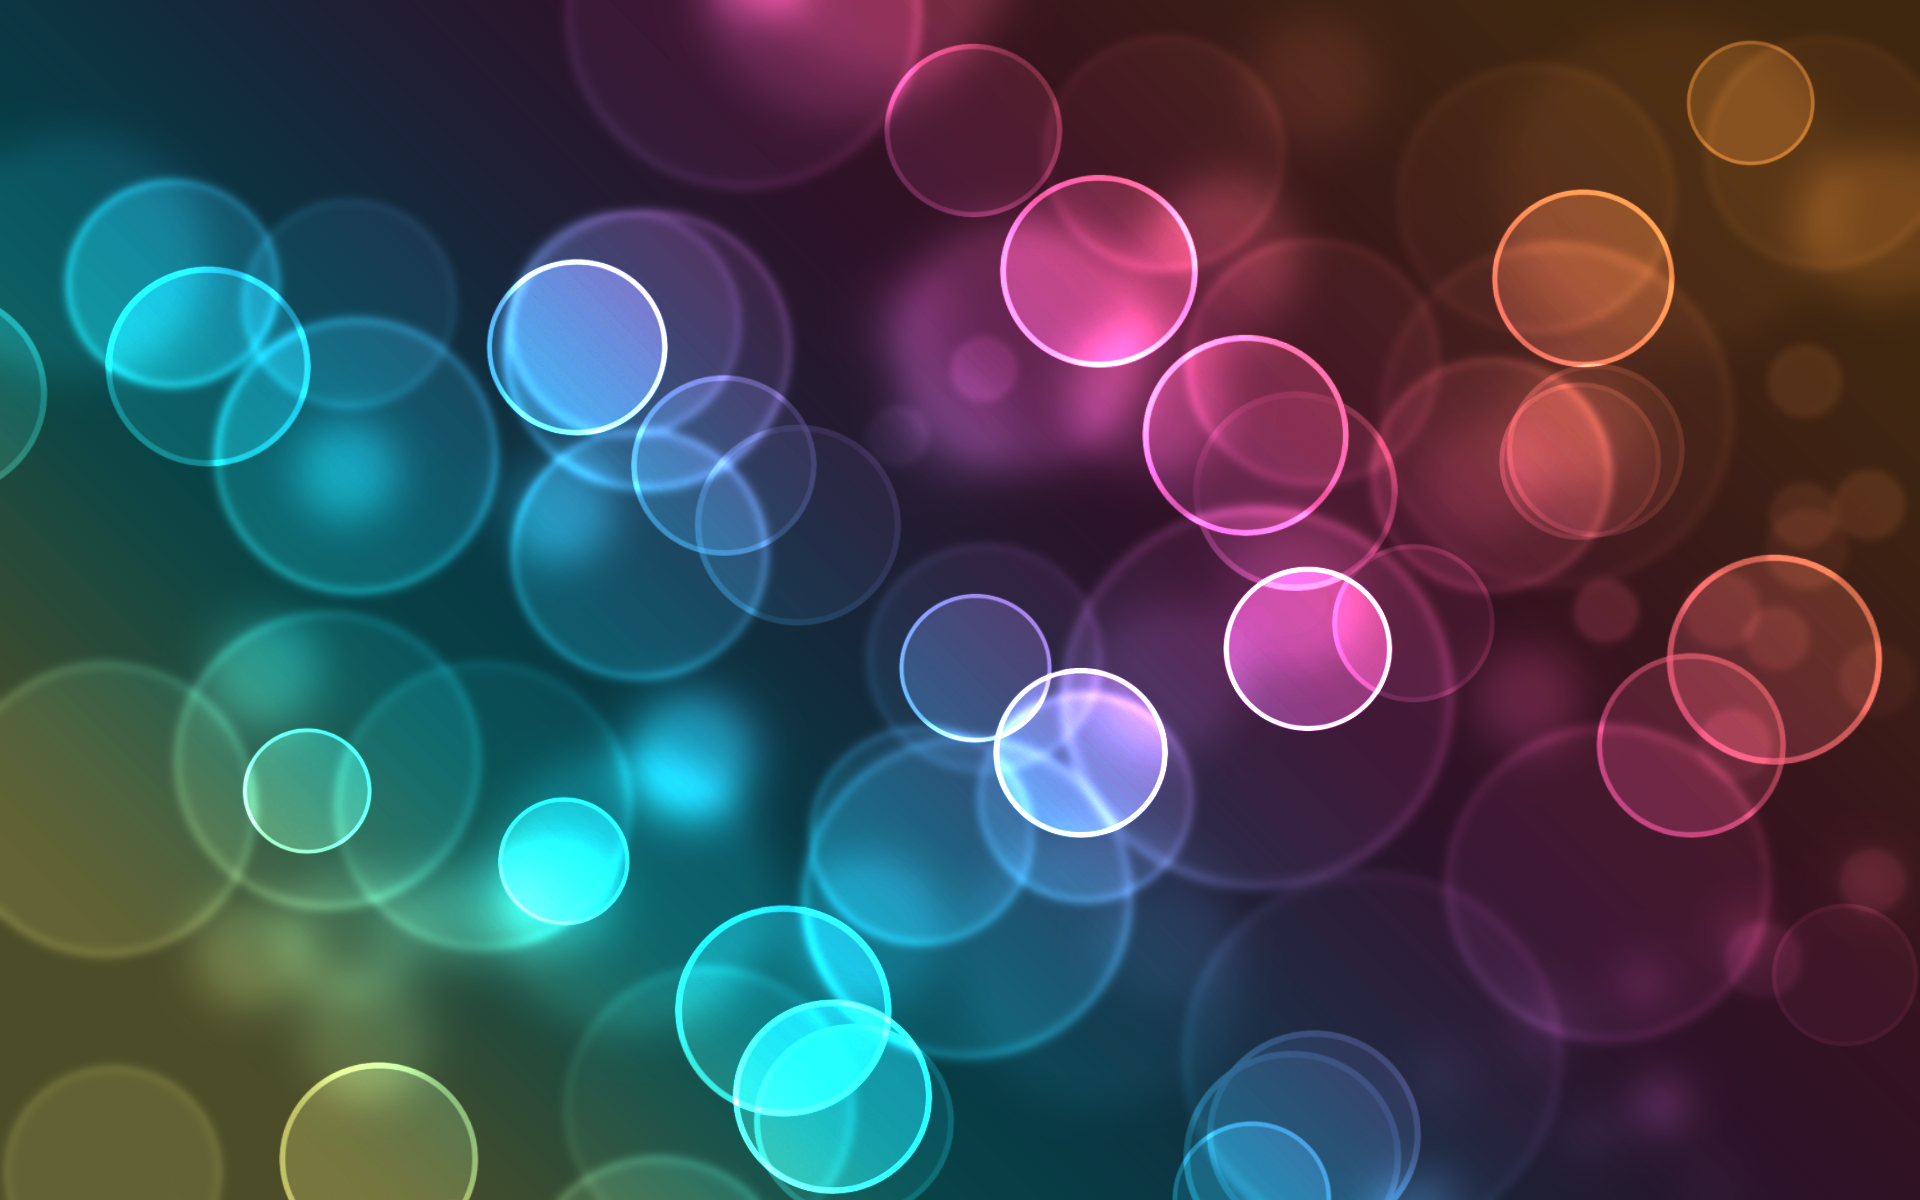 Group of Bokeh By Absurdwordpreferred Resources